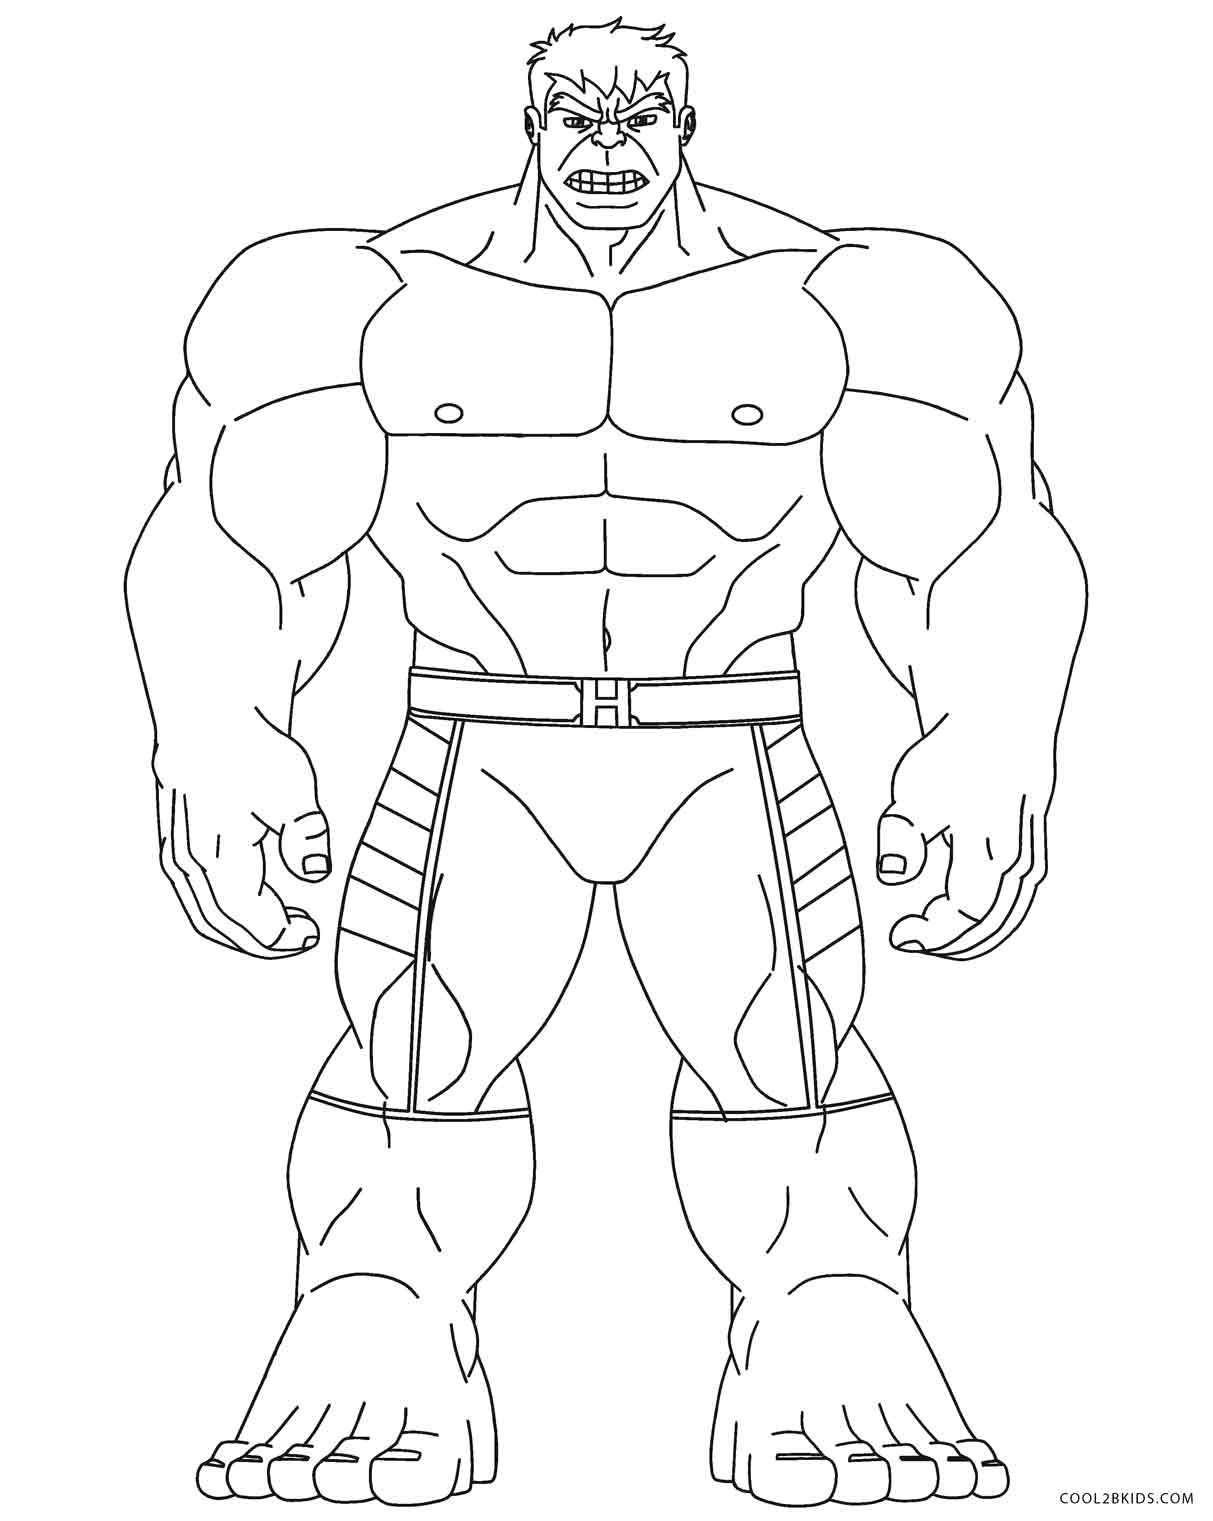 Free Printable Hulk Coloring Pages For Kids | Cool2bKids